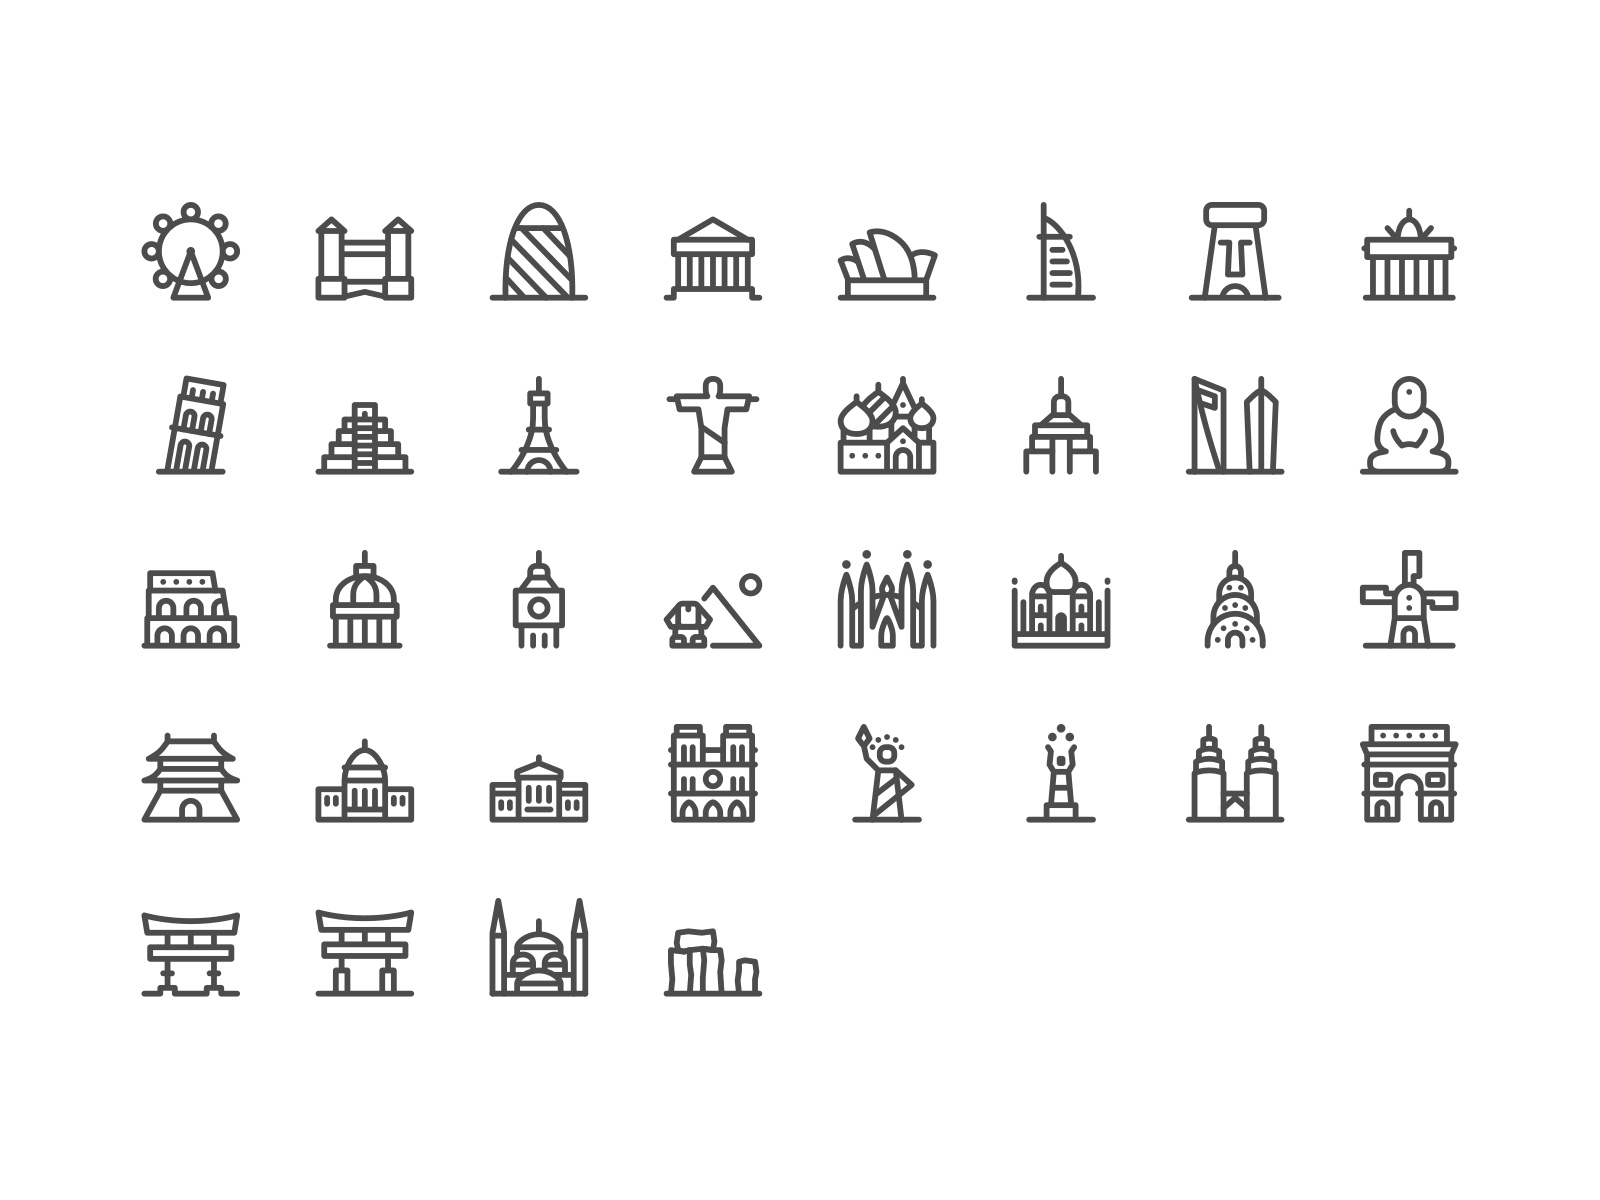 The full World Landmarks Icon Set